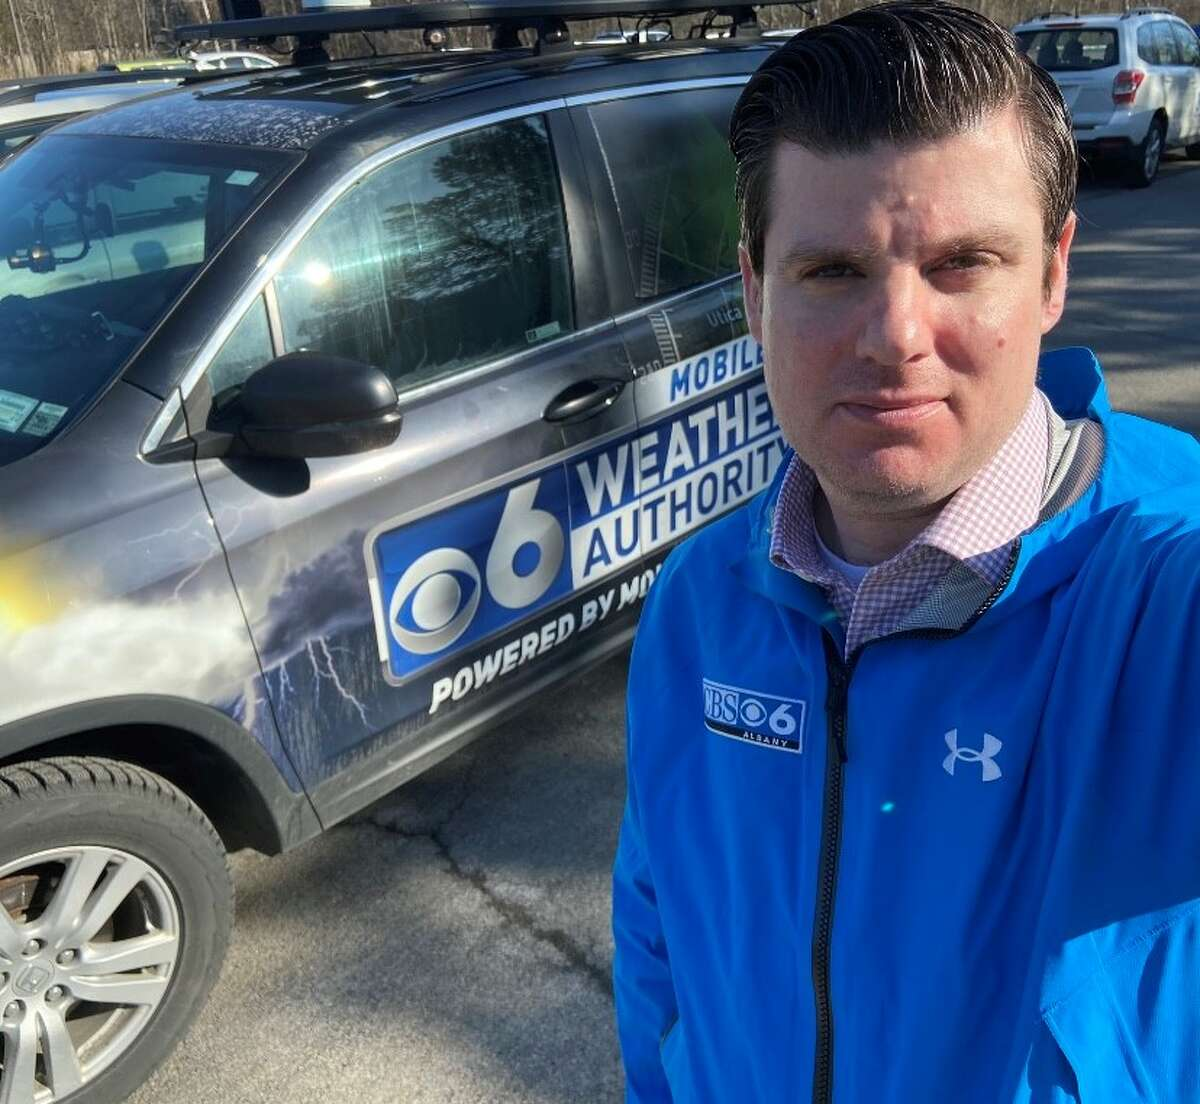 Craig Gold is a meteorologist at CBS6 News. He has been forecasting weather here in the Capital Region for nearly six years.